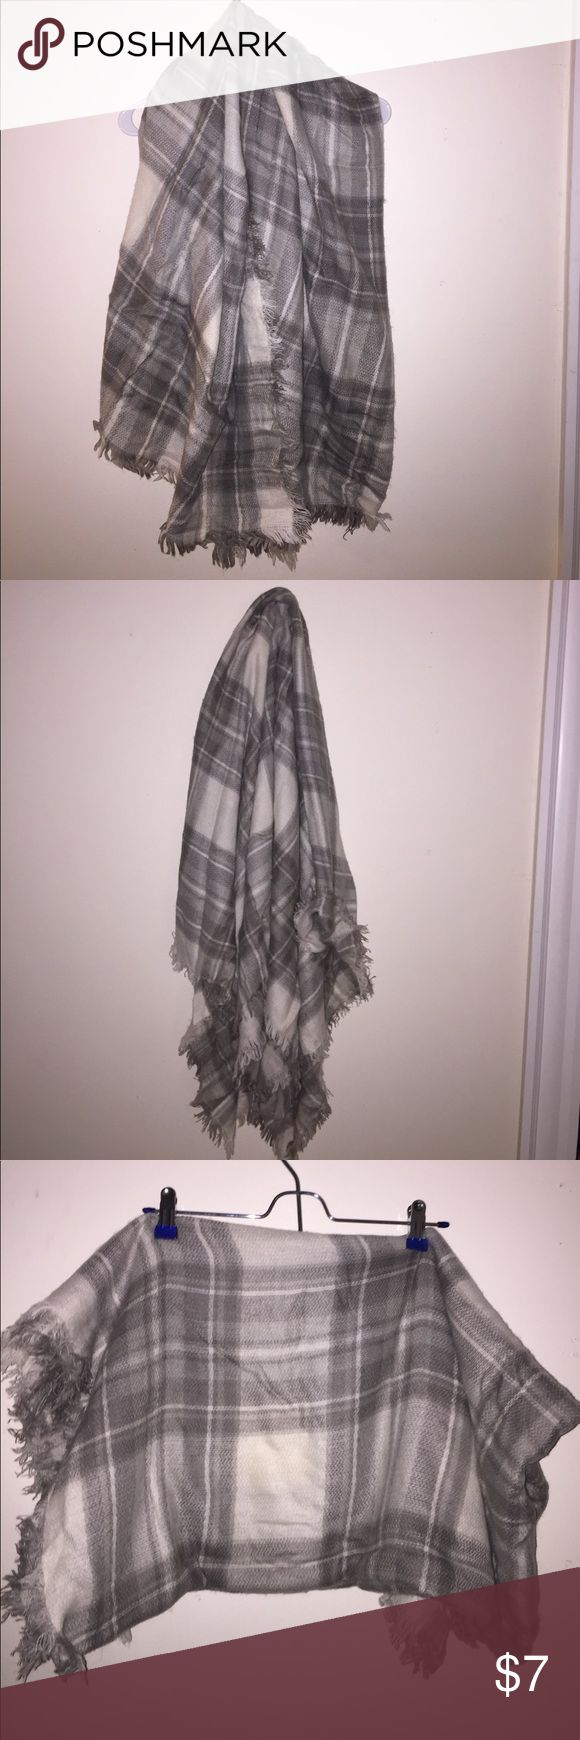 BP plaid scarf Nordstrom BP gray and white warm plaid scarf/shawl, barely used and in good condition bp Accessories Scarves & Wraps